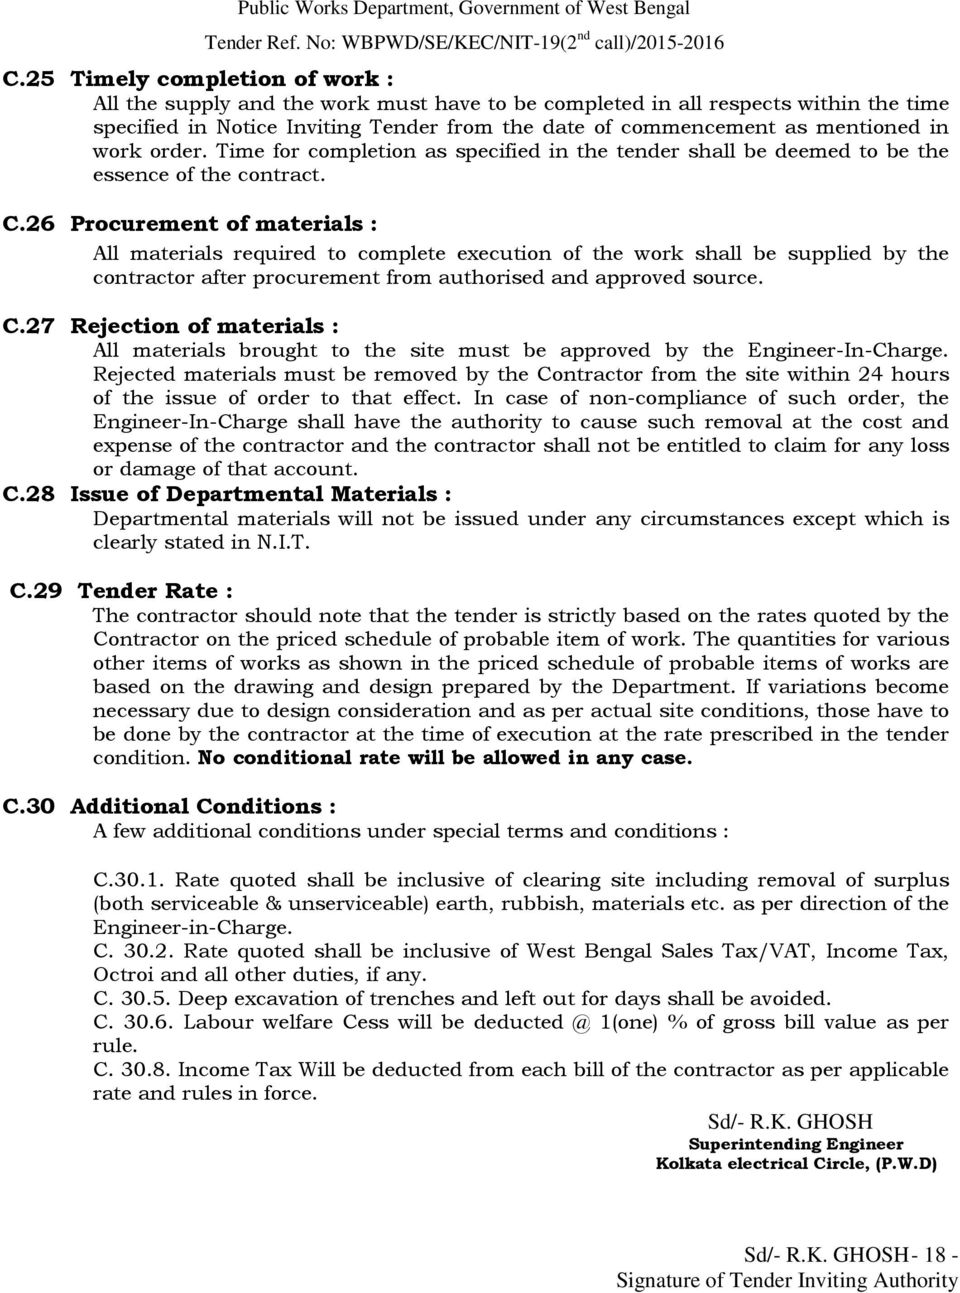 26 Procurement of materials : All materials required to complete execution of the work shall be supplied by the contractor after procurement from authorised and approved source. C.